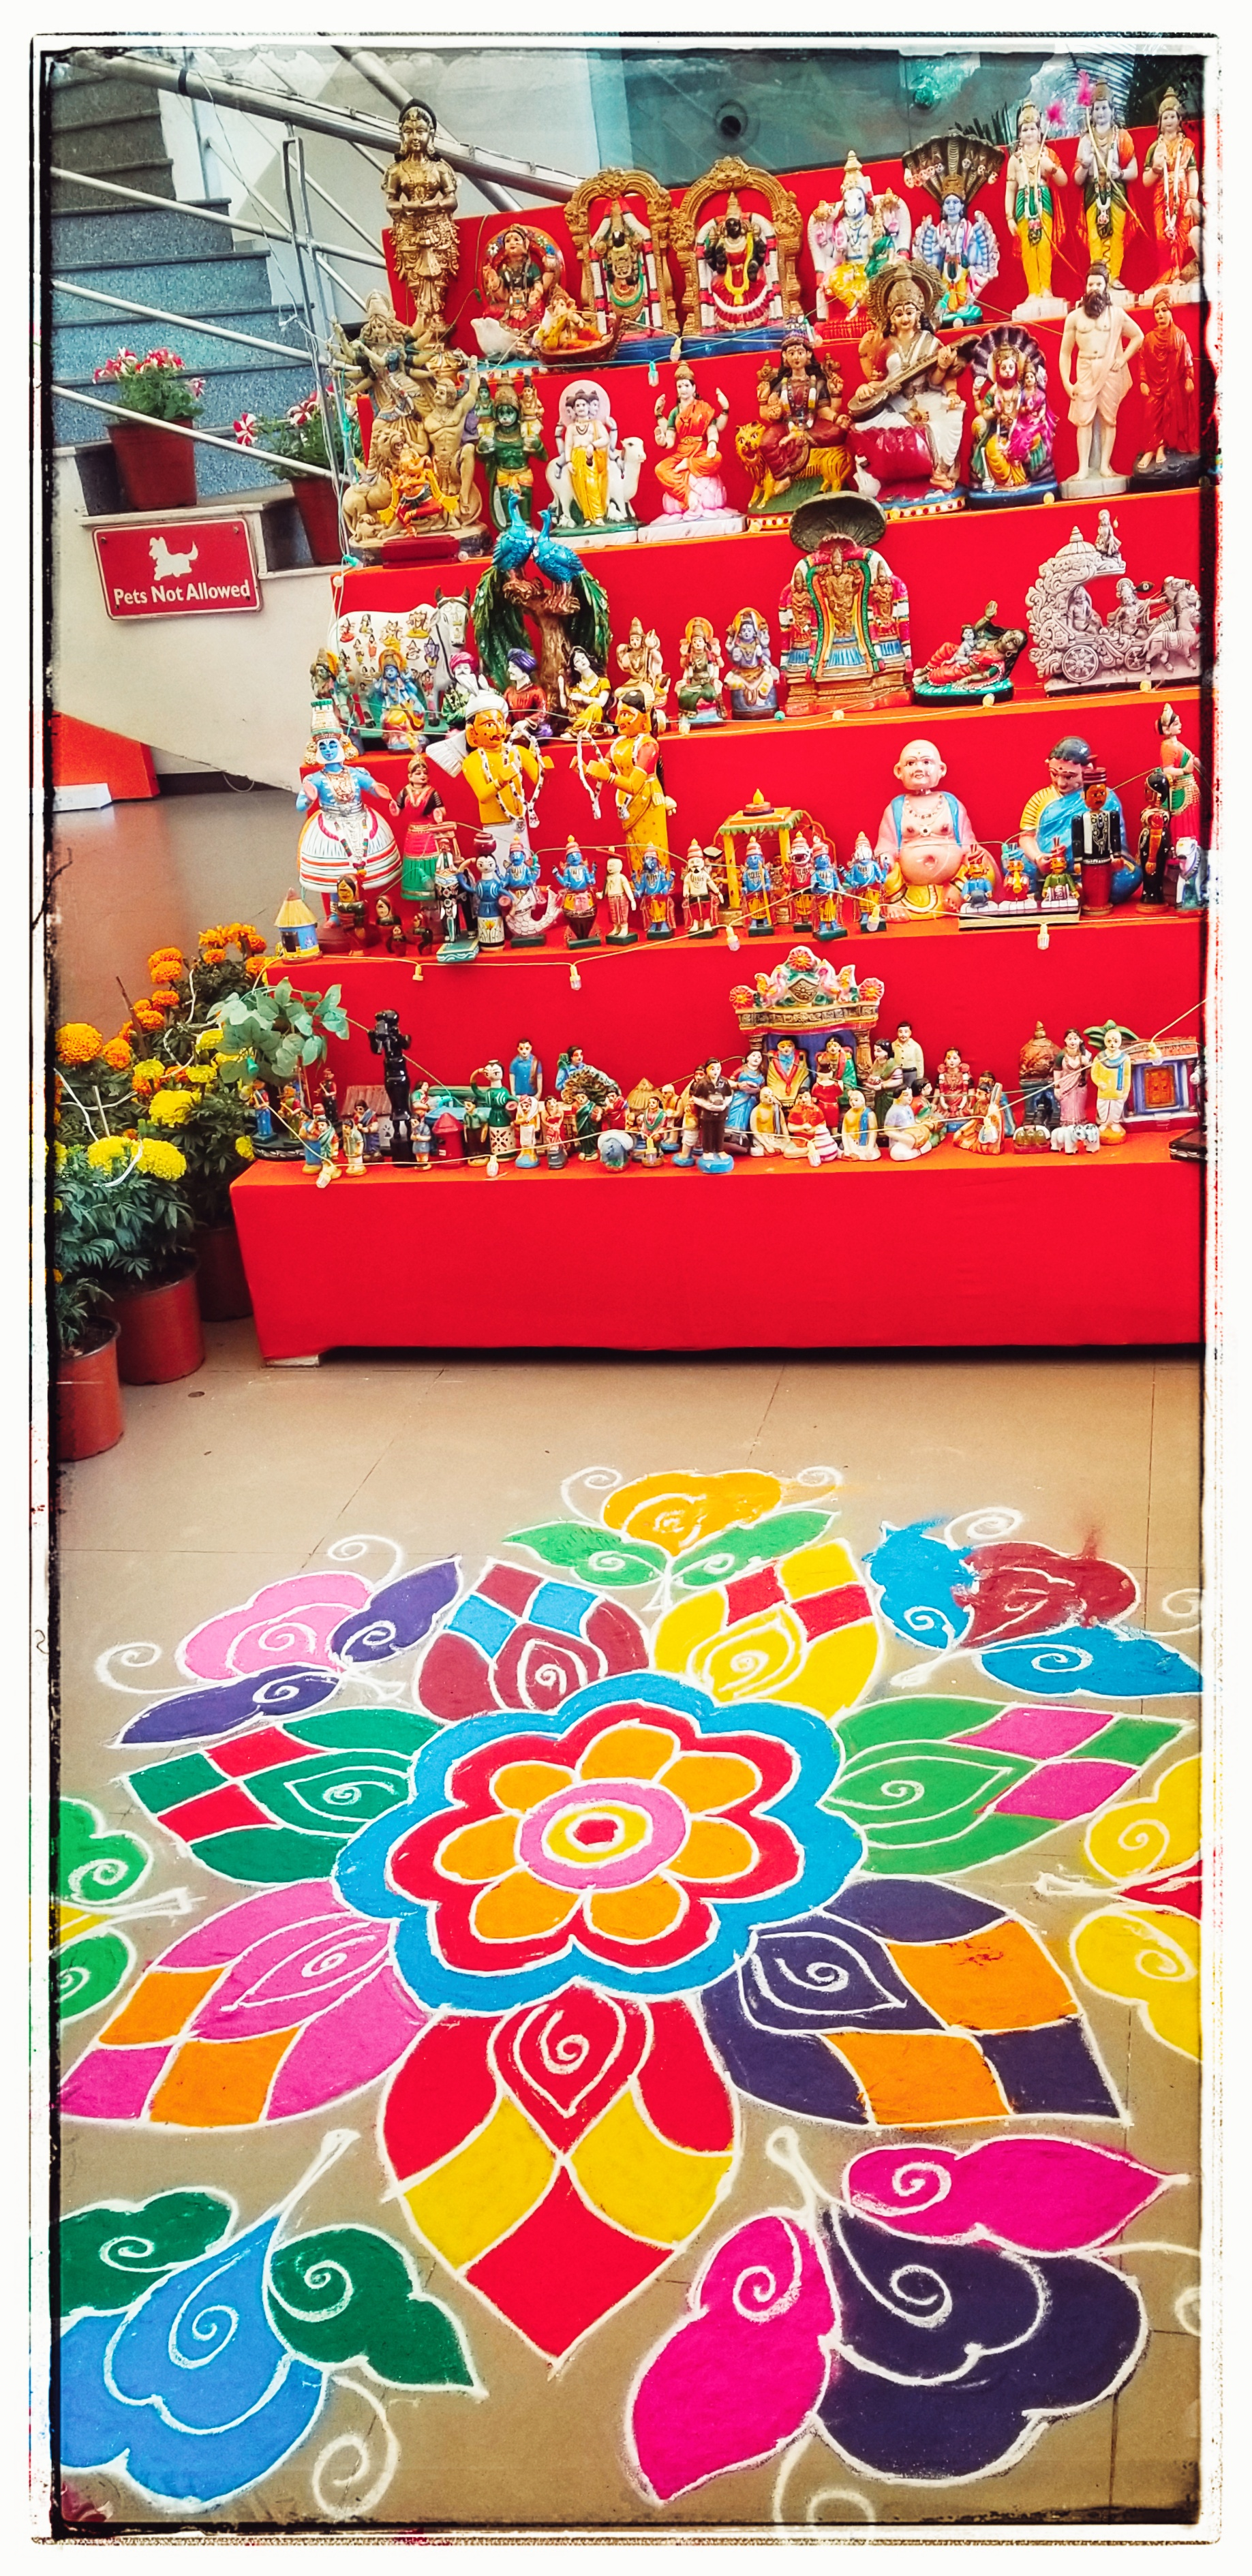 Pongol and many of the 300,000 gods that the Hindus worship.